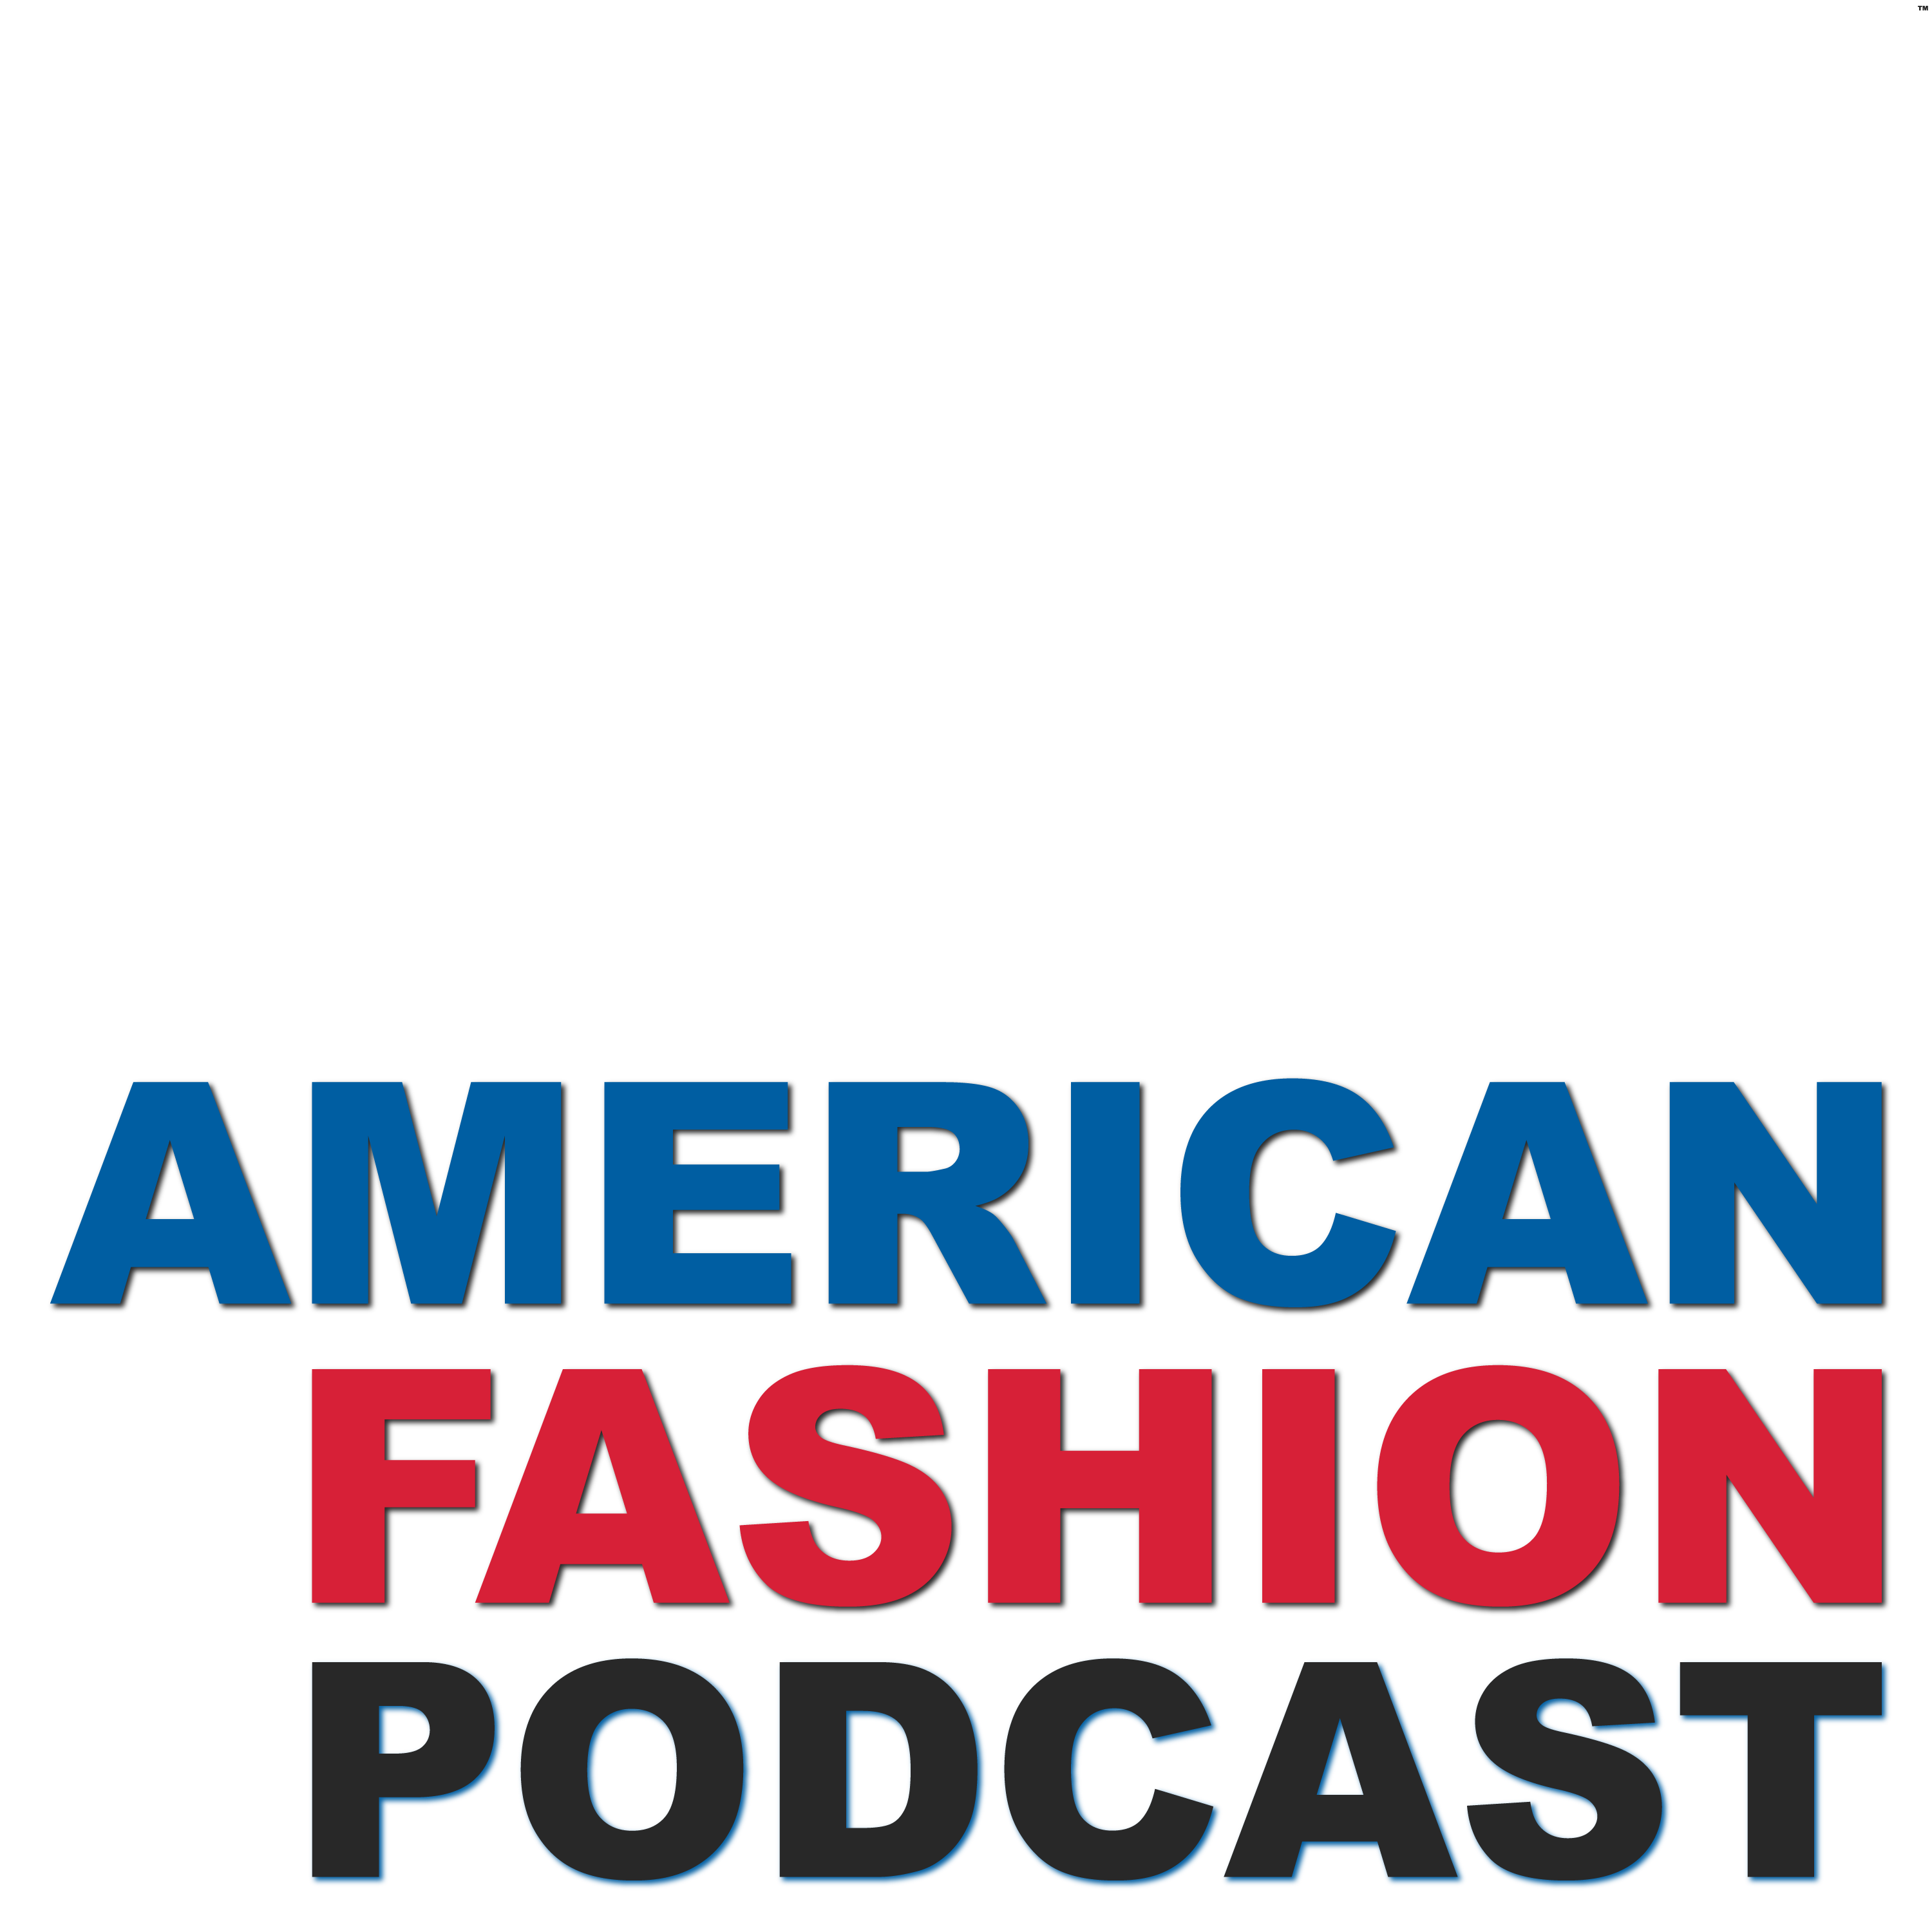 0126f94daa8 American Fashion Podcast by MouthMedia Network on Apple Podcasts